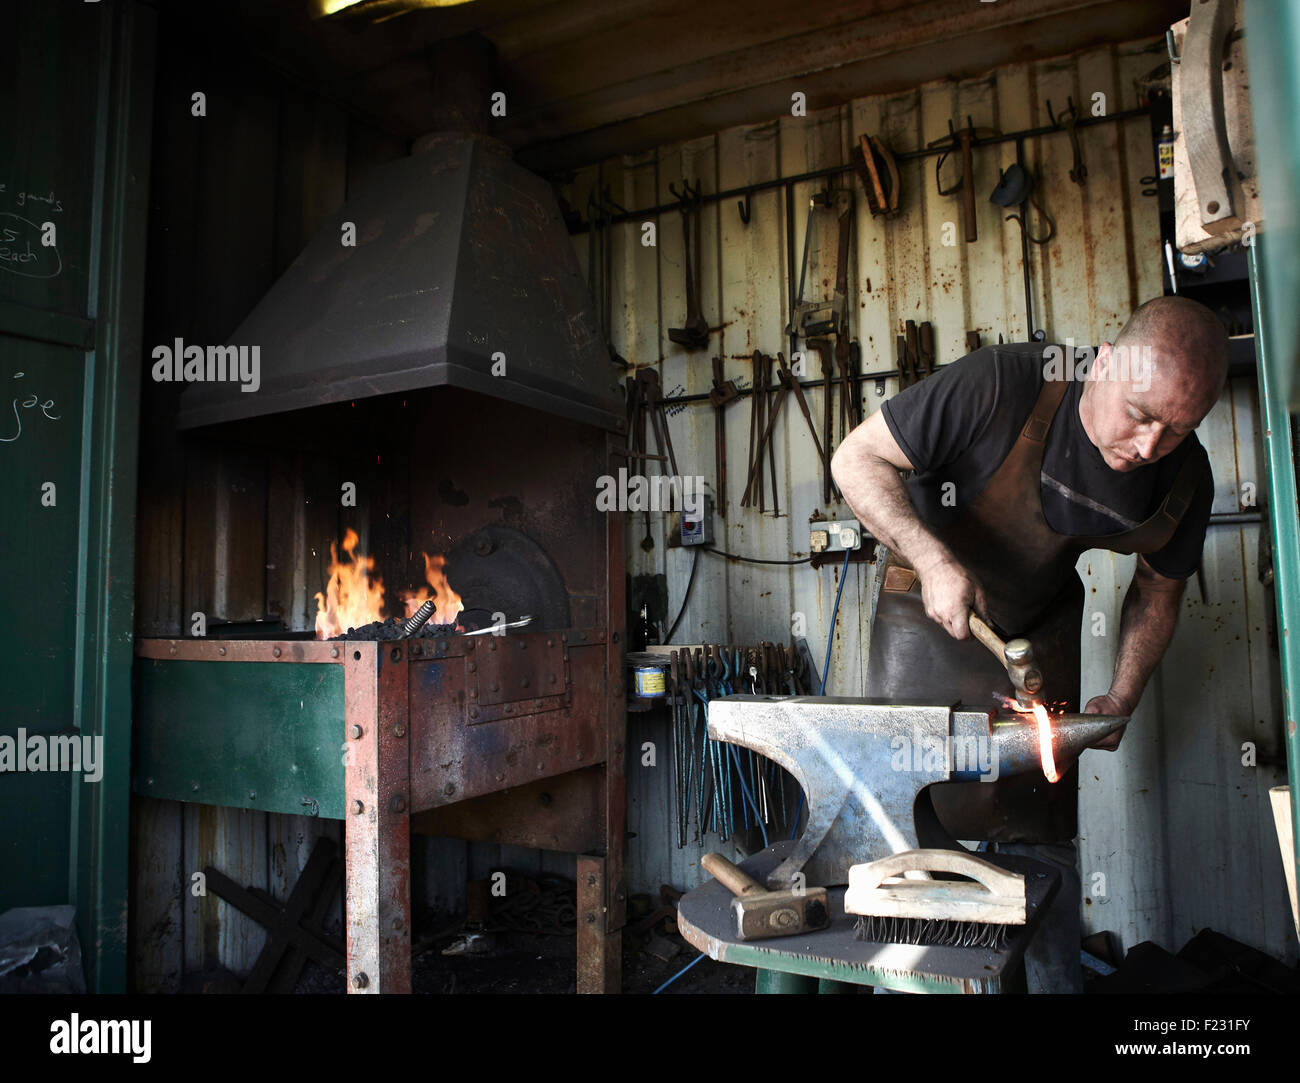 Blacksmith shaping a hot piece of iron on an anvil in a traditional forge with an open fire. - Stock Image